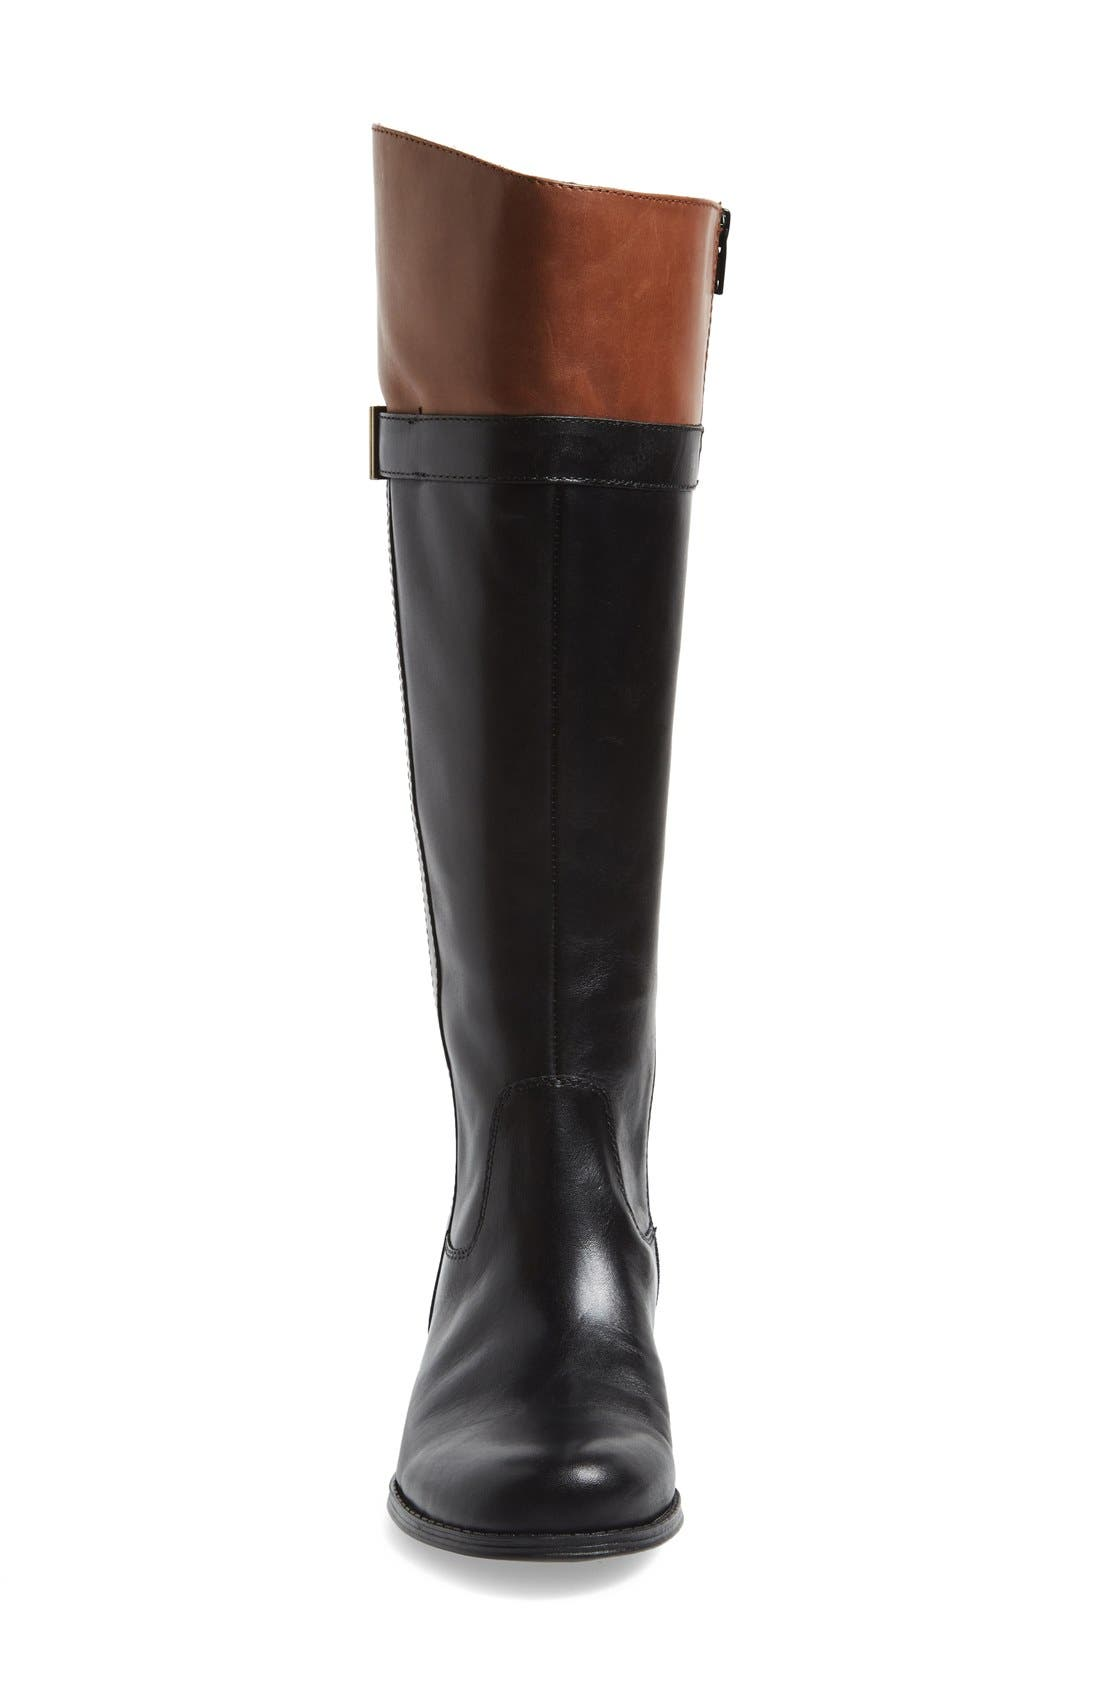 Alternate Image 3  - Naturalizer 'Josette' Knee High Boot (Wide Calf) (Women)